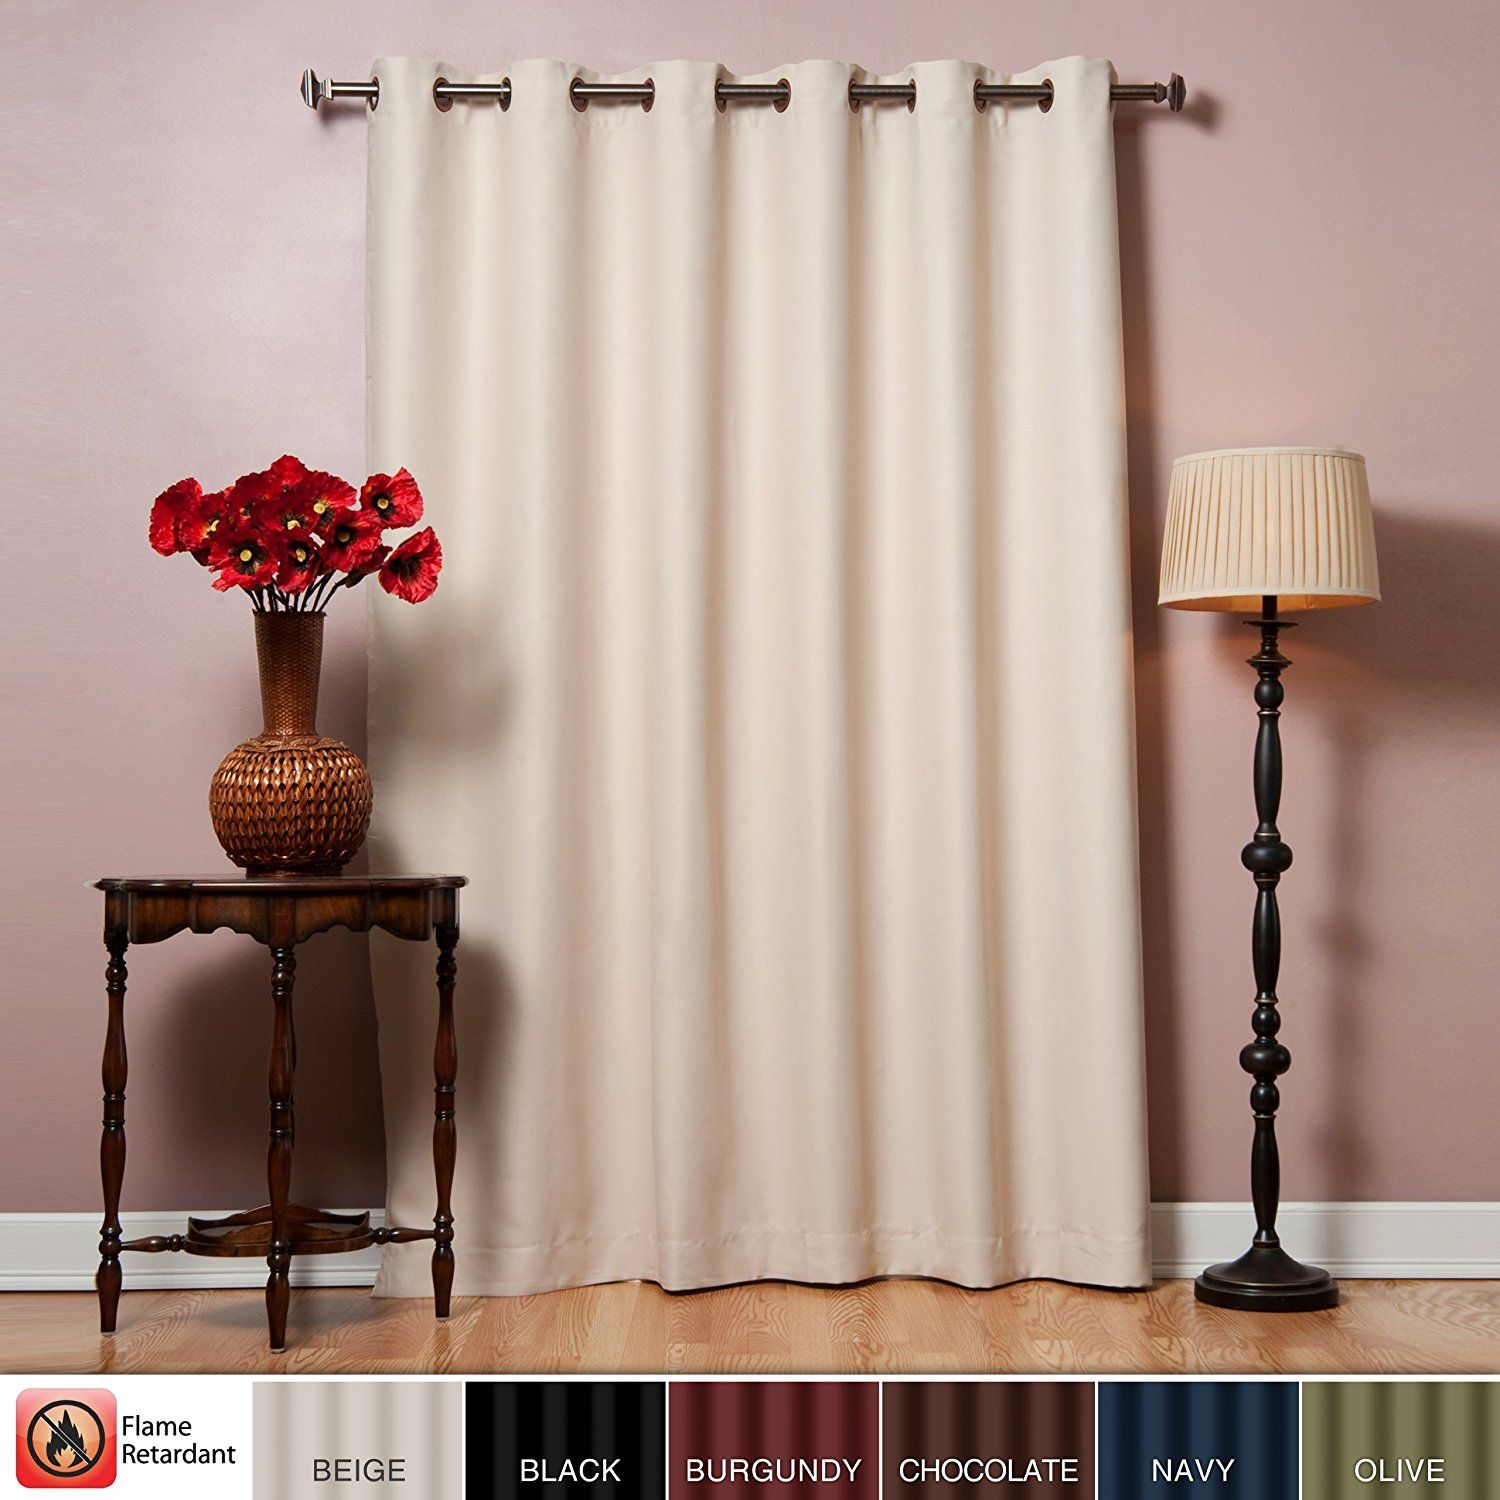 Best Home Fashion Wide Width Flame Retardant Thermal Insulated Blackout Curtain - Antique Bronze Grommet Top - Beige - 80'W x 96'L - (1 Panel) >>> To view further for this item, visit the image link. (This is an affiliate link) #WindowTreatments